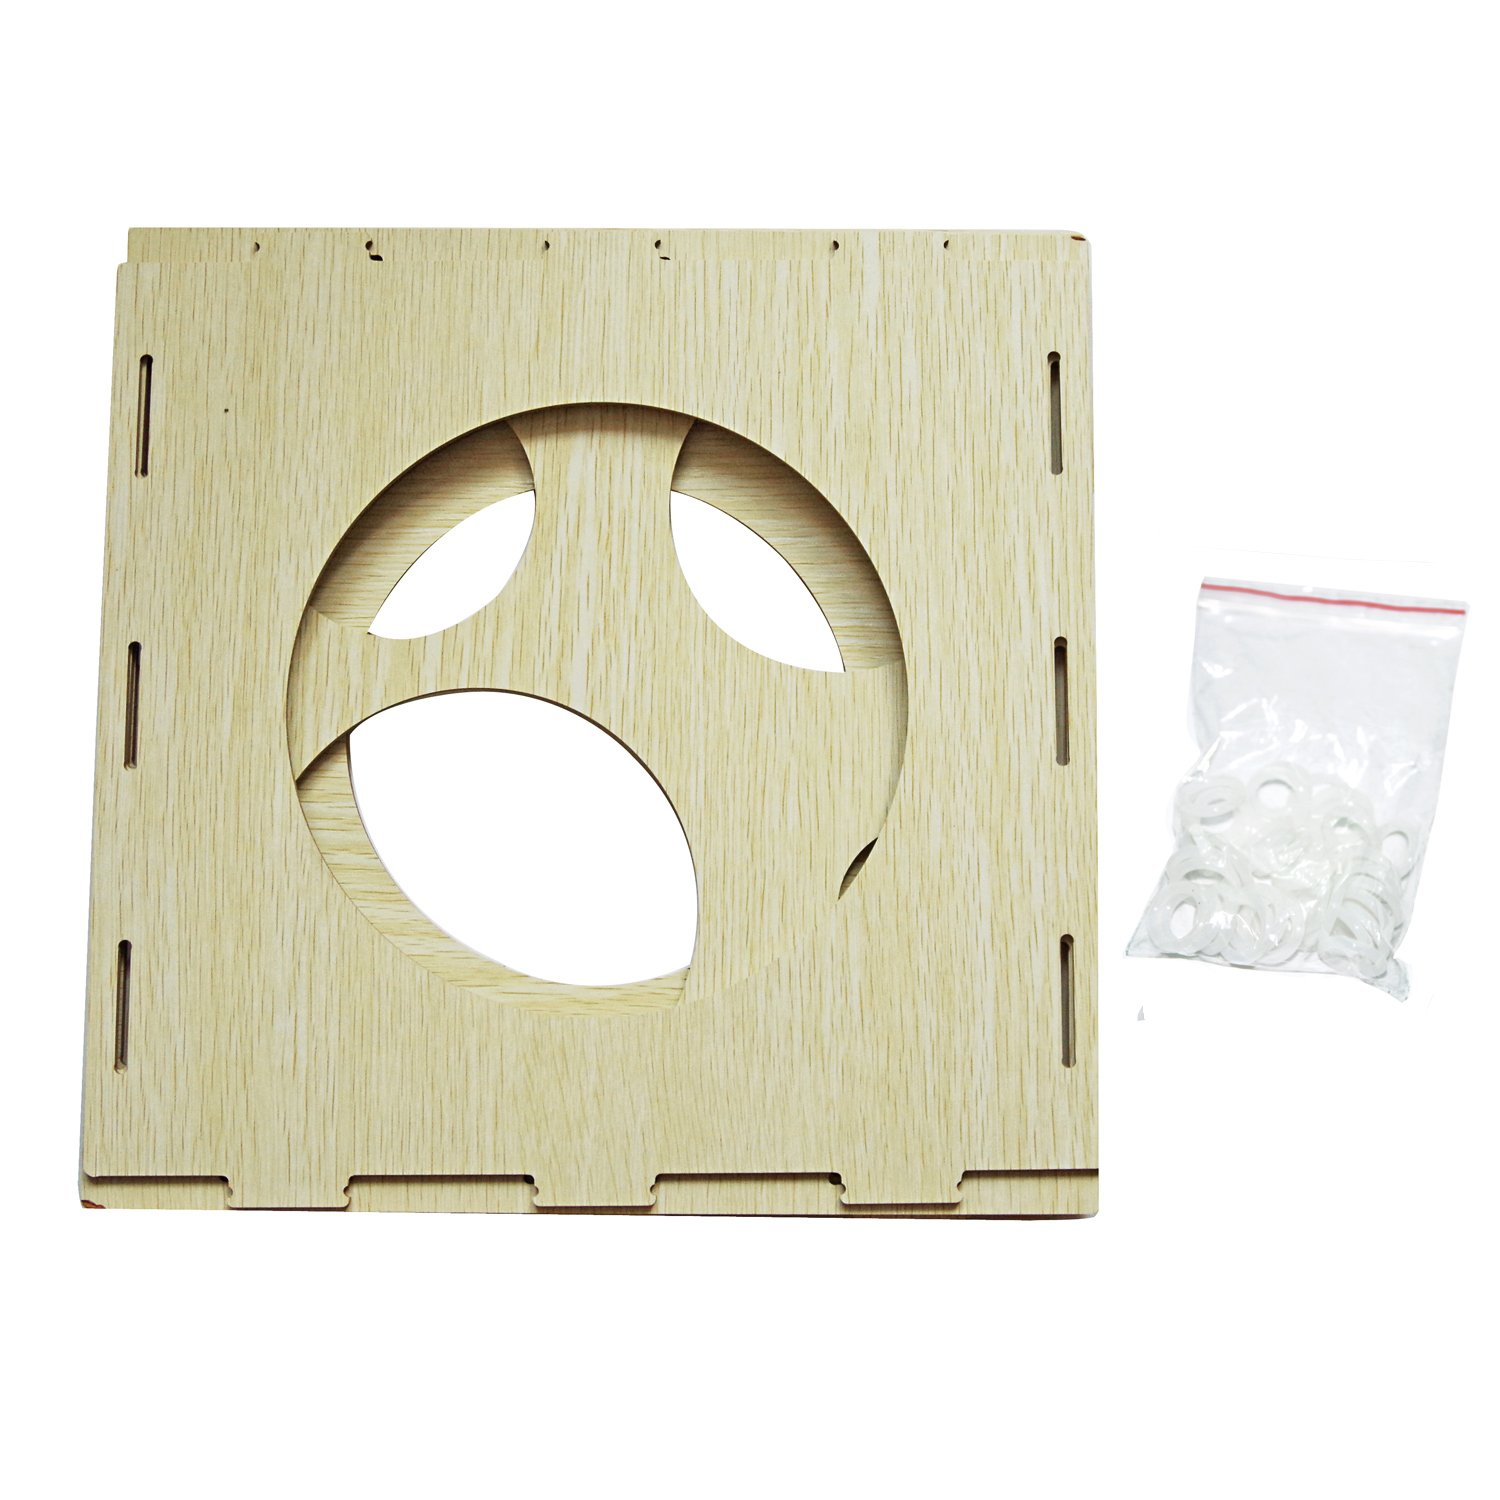 9 Holes Collapsible Wood Cube Balloon Sizer Box From 2'' - 10'' by Jioong (Image #2)